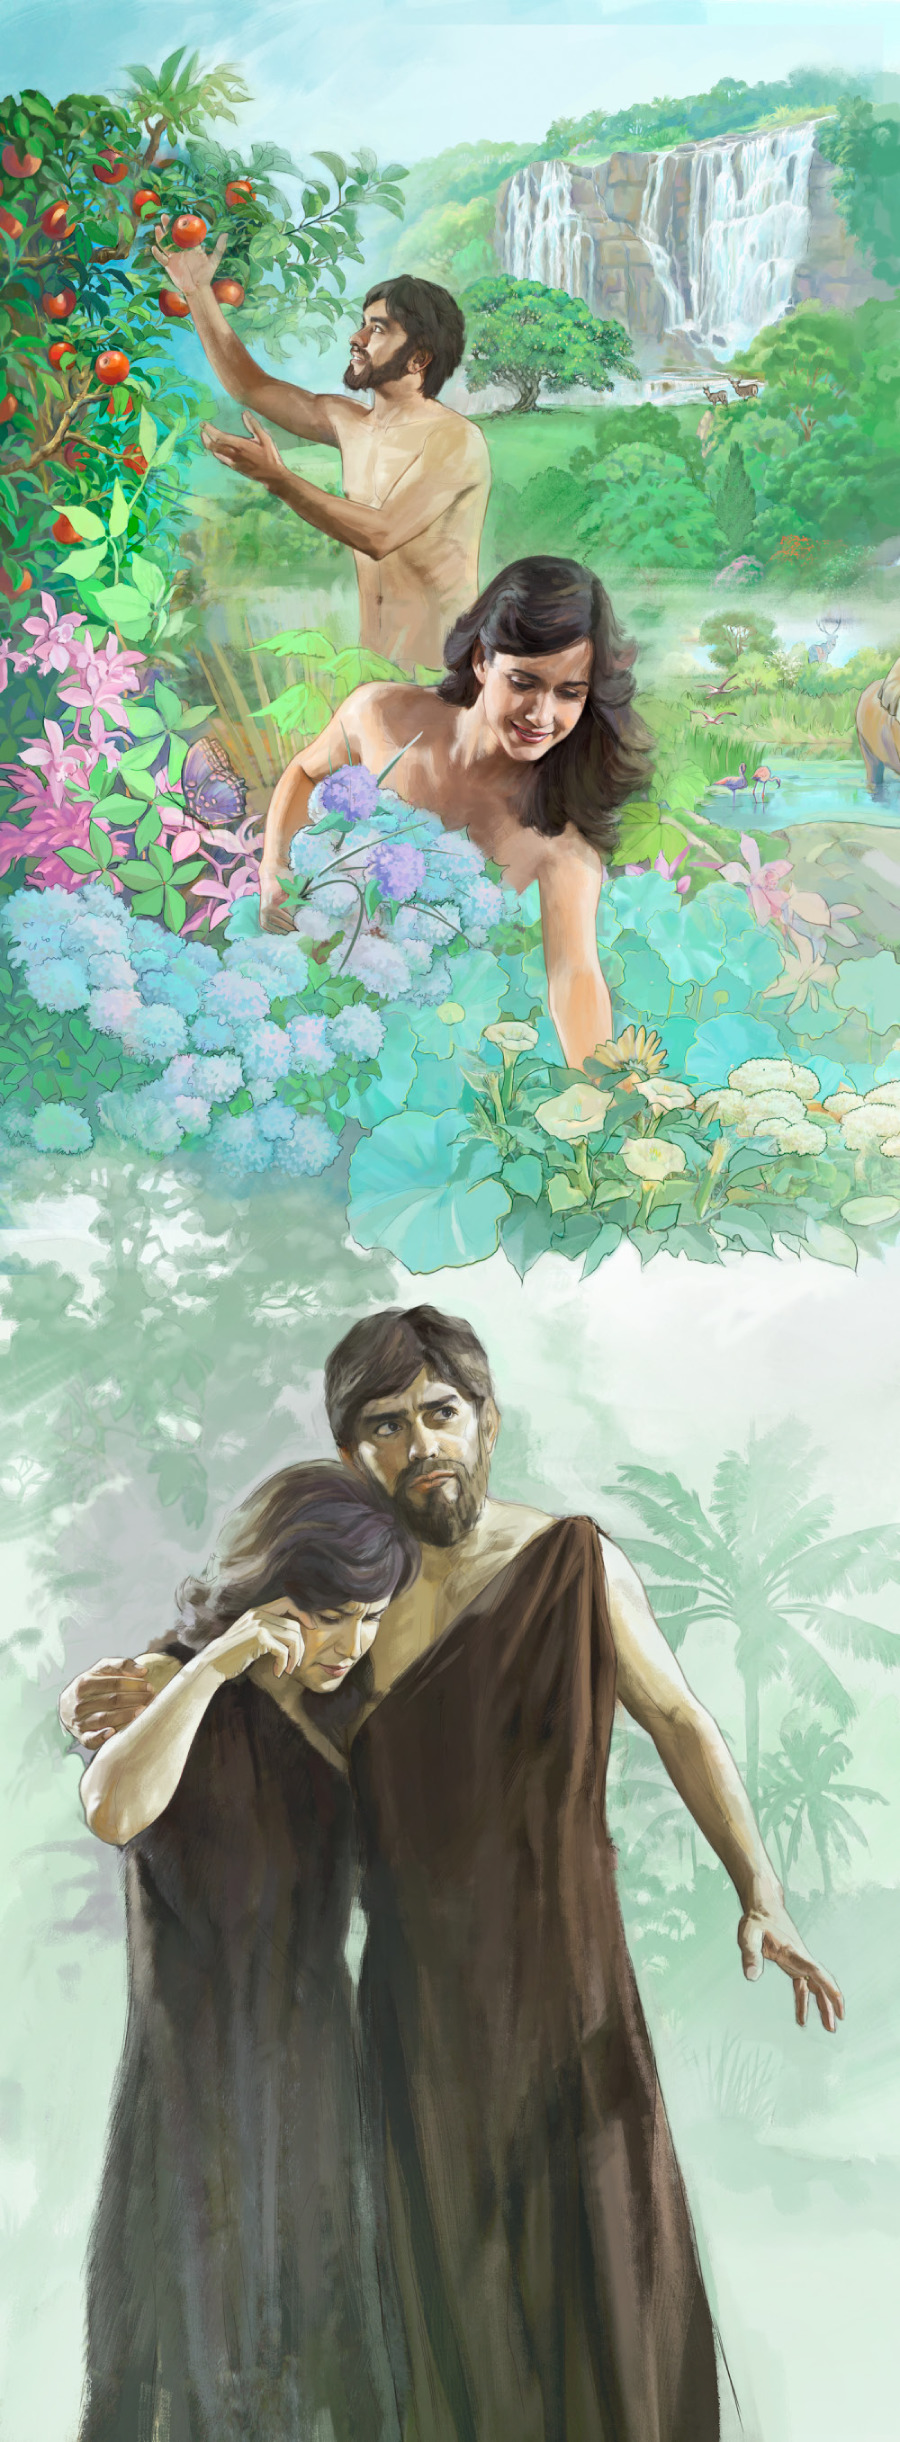 Adam And Eve In The Garden Of Eden And Later Being Put Out Of The Garden